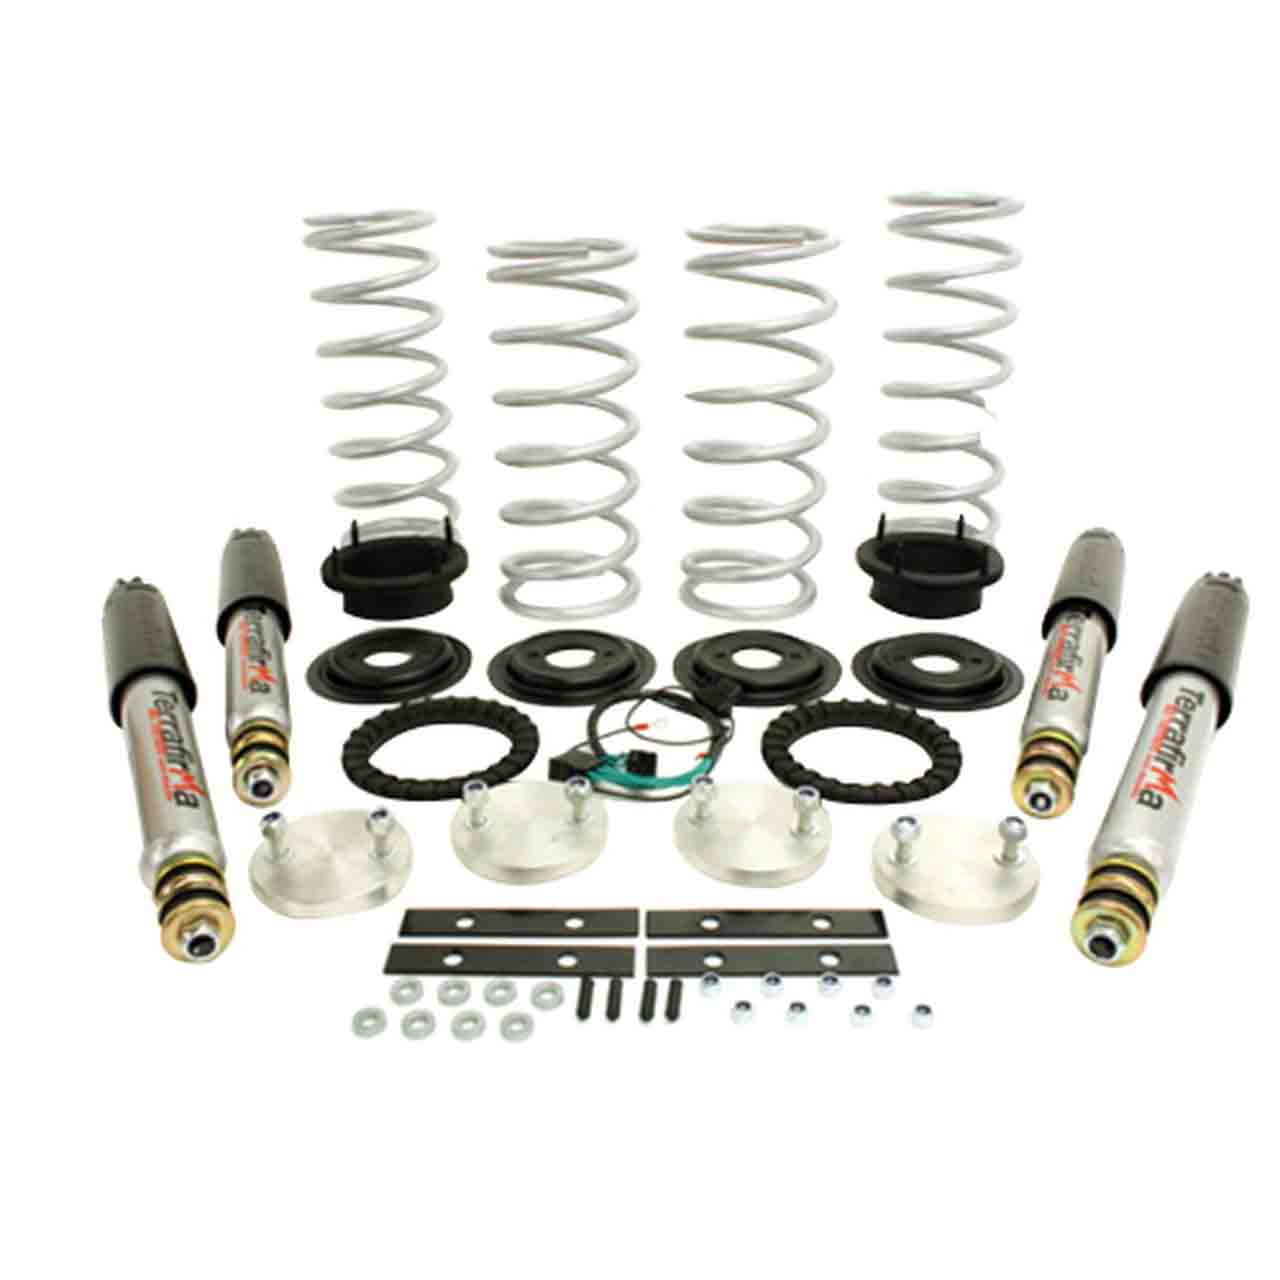 Range Rover P38 Standard Ride Height Incluso Ammortizzatore All Terrain Air To Coil Kit Conversione Terrafirma Range Rover P38 Land Rover GR2-07319